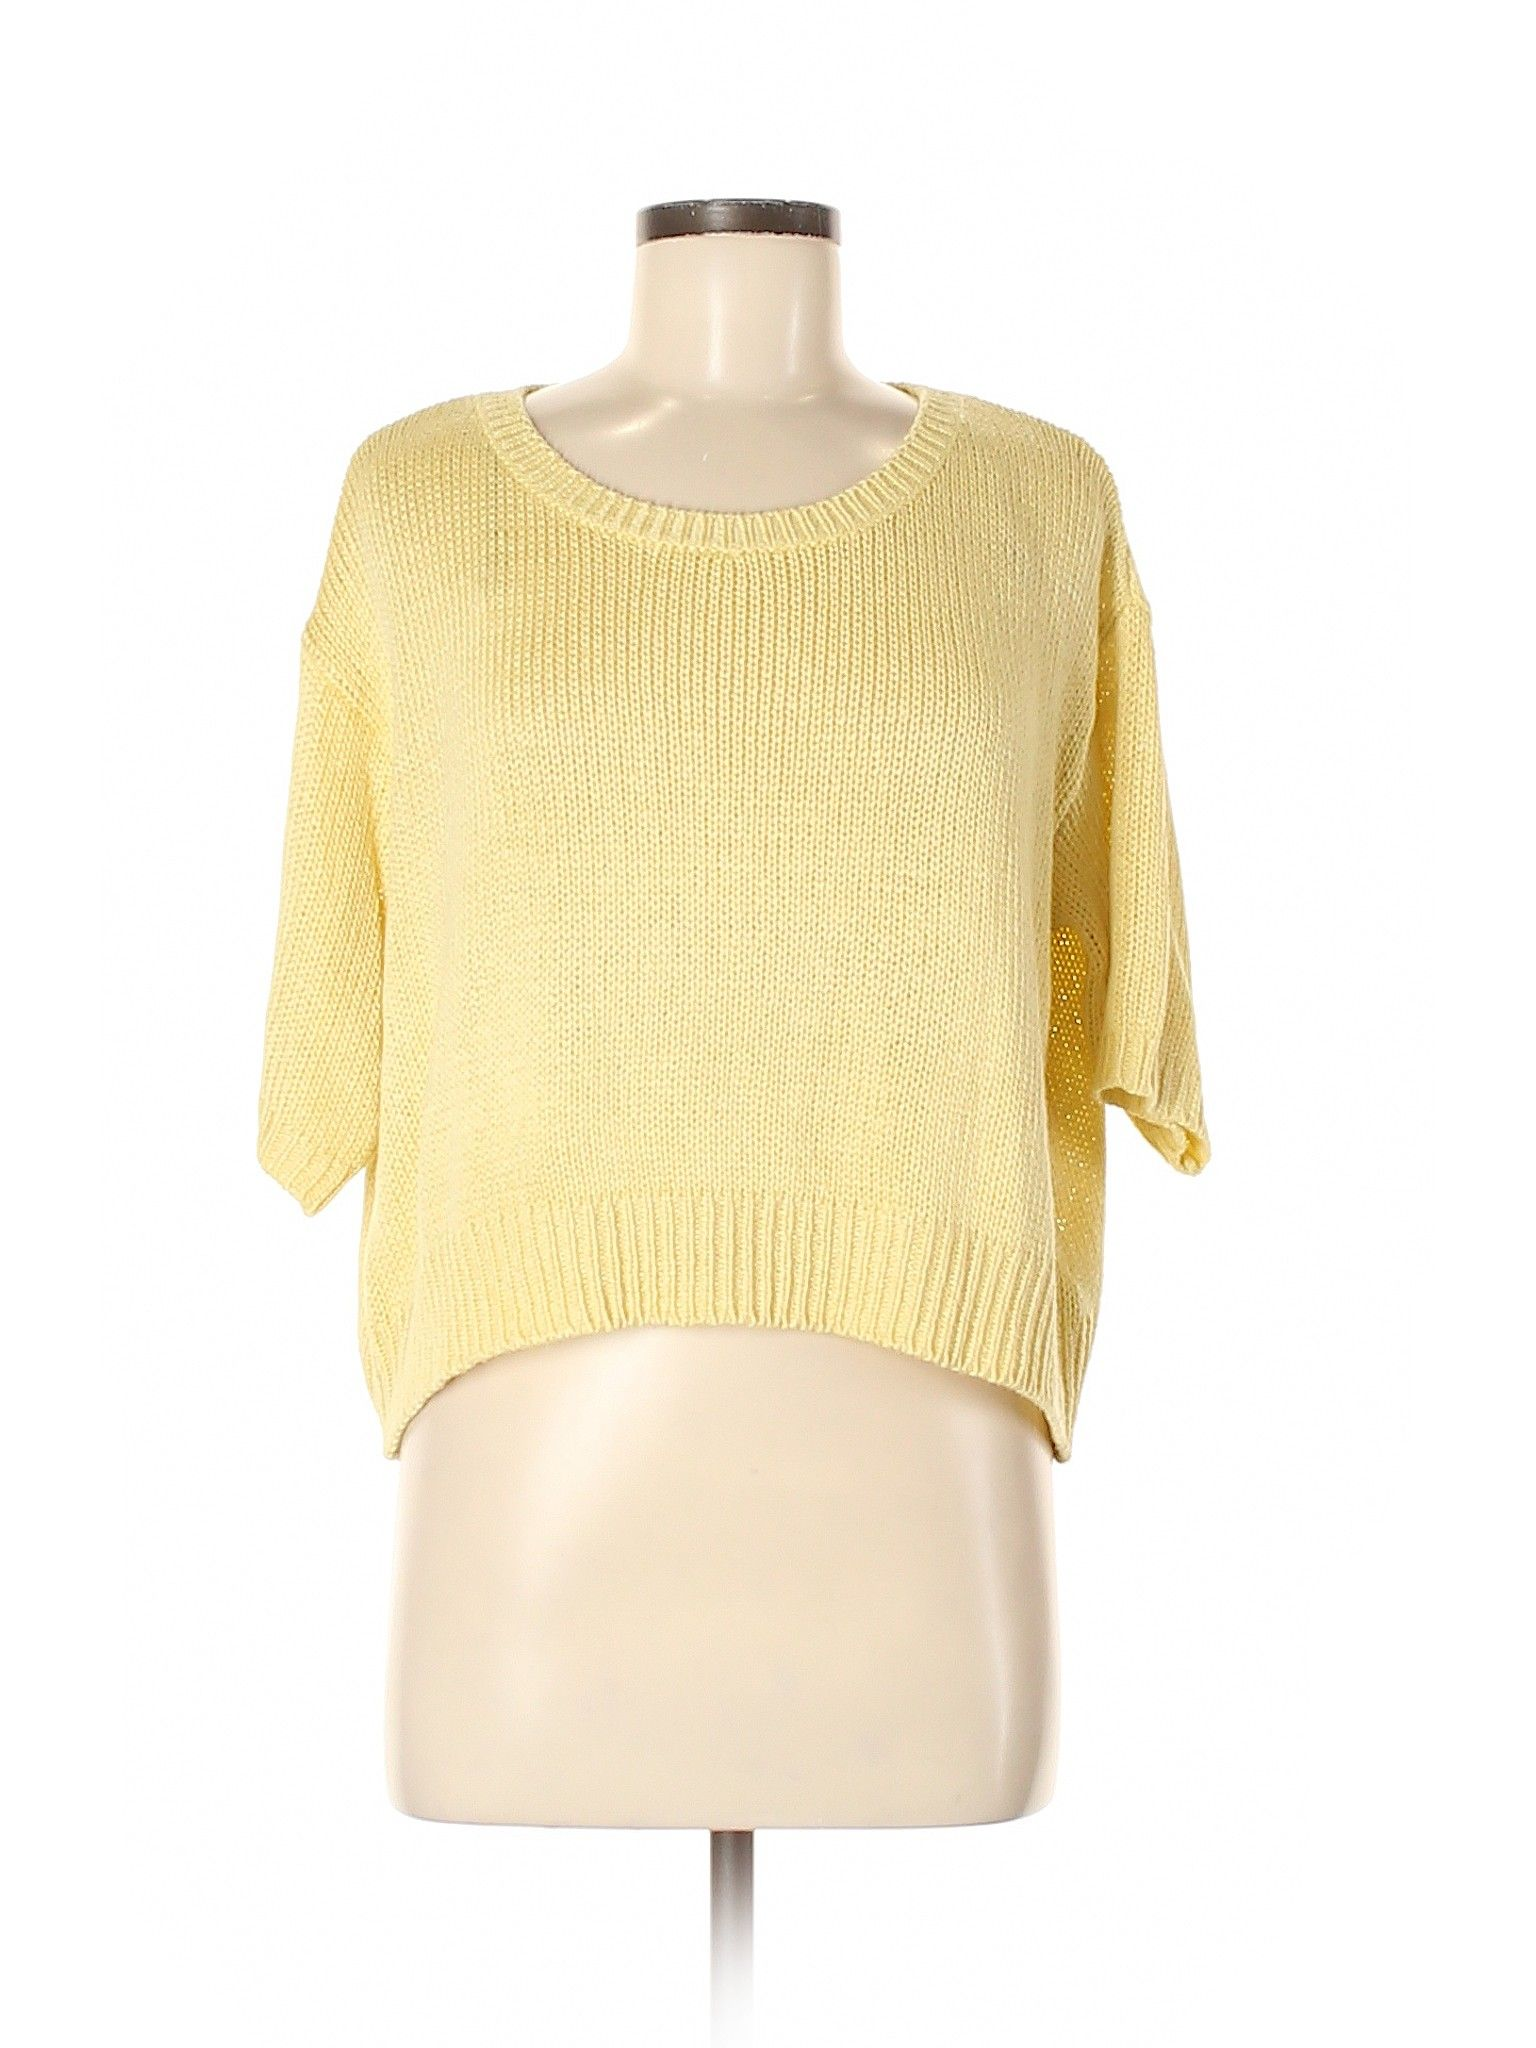 H & M Pullover Sweater: Yellow Solid Scoop Neck Women's Tops